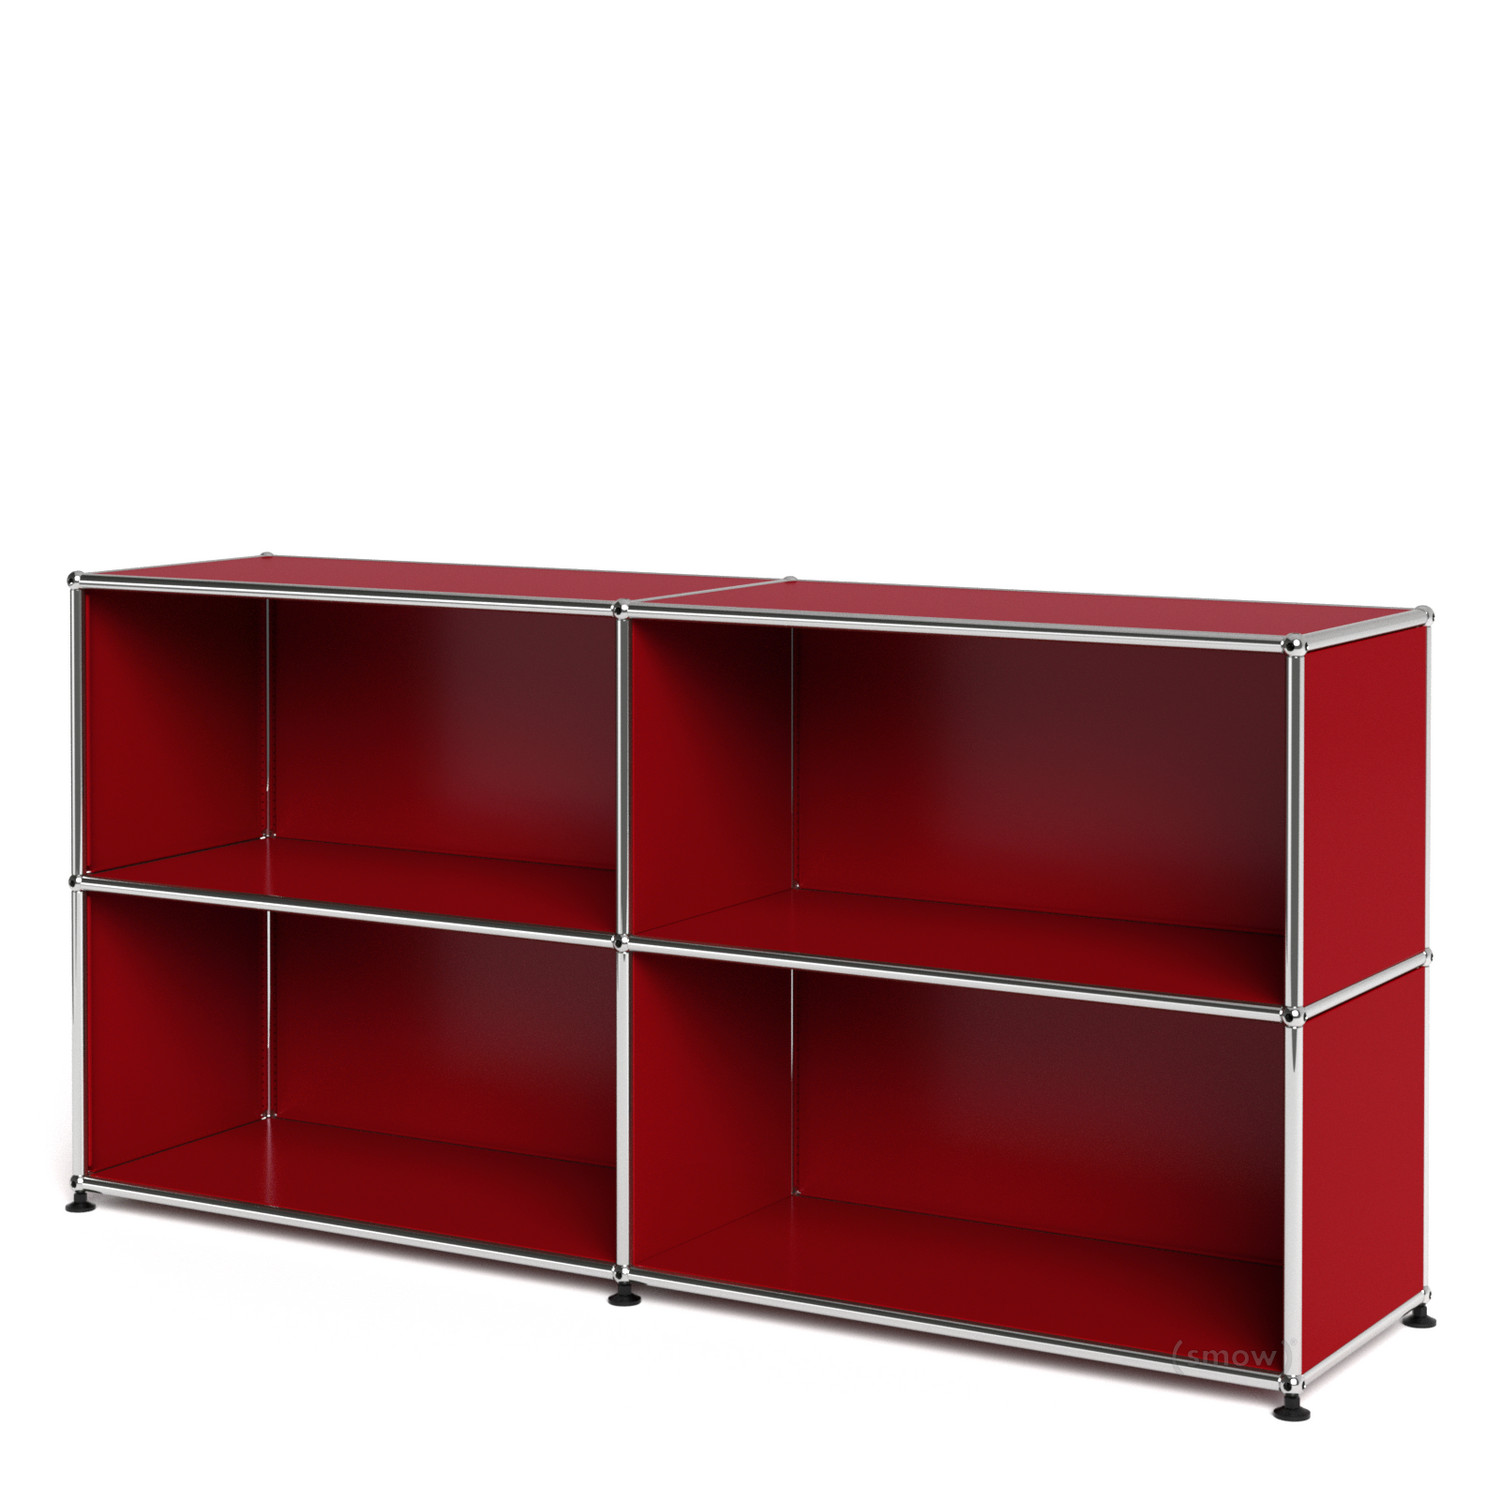 Usm haller sideboard l customisable usm ruby red open for Sideboard usm